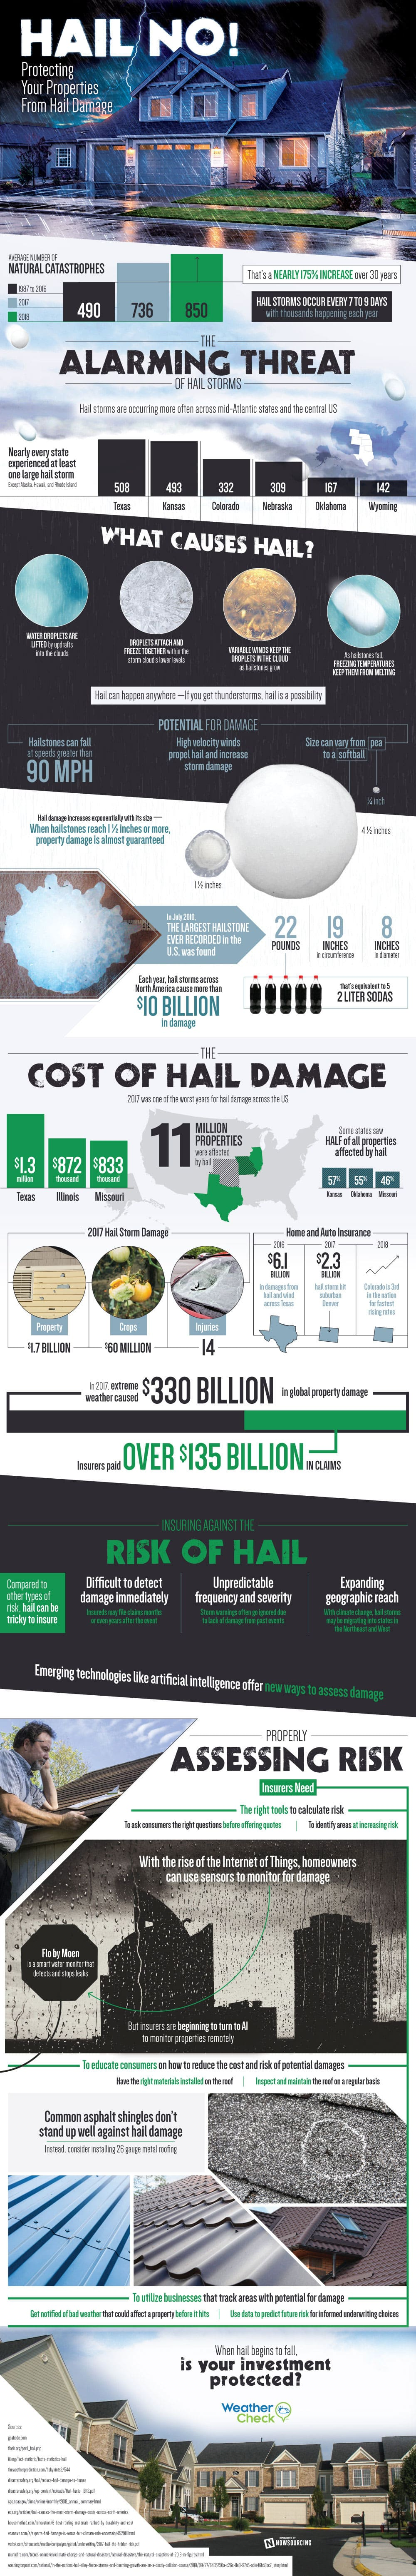 The Alarming Cost Of Hail Damage - Infographic